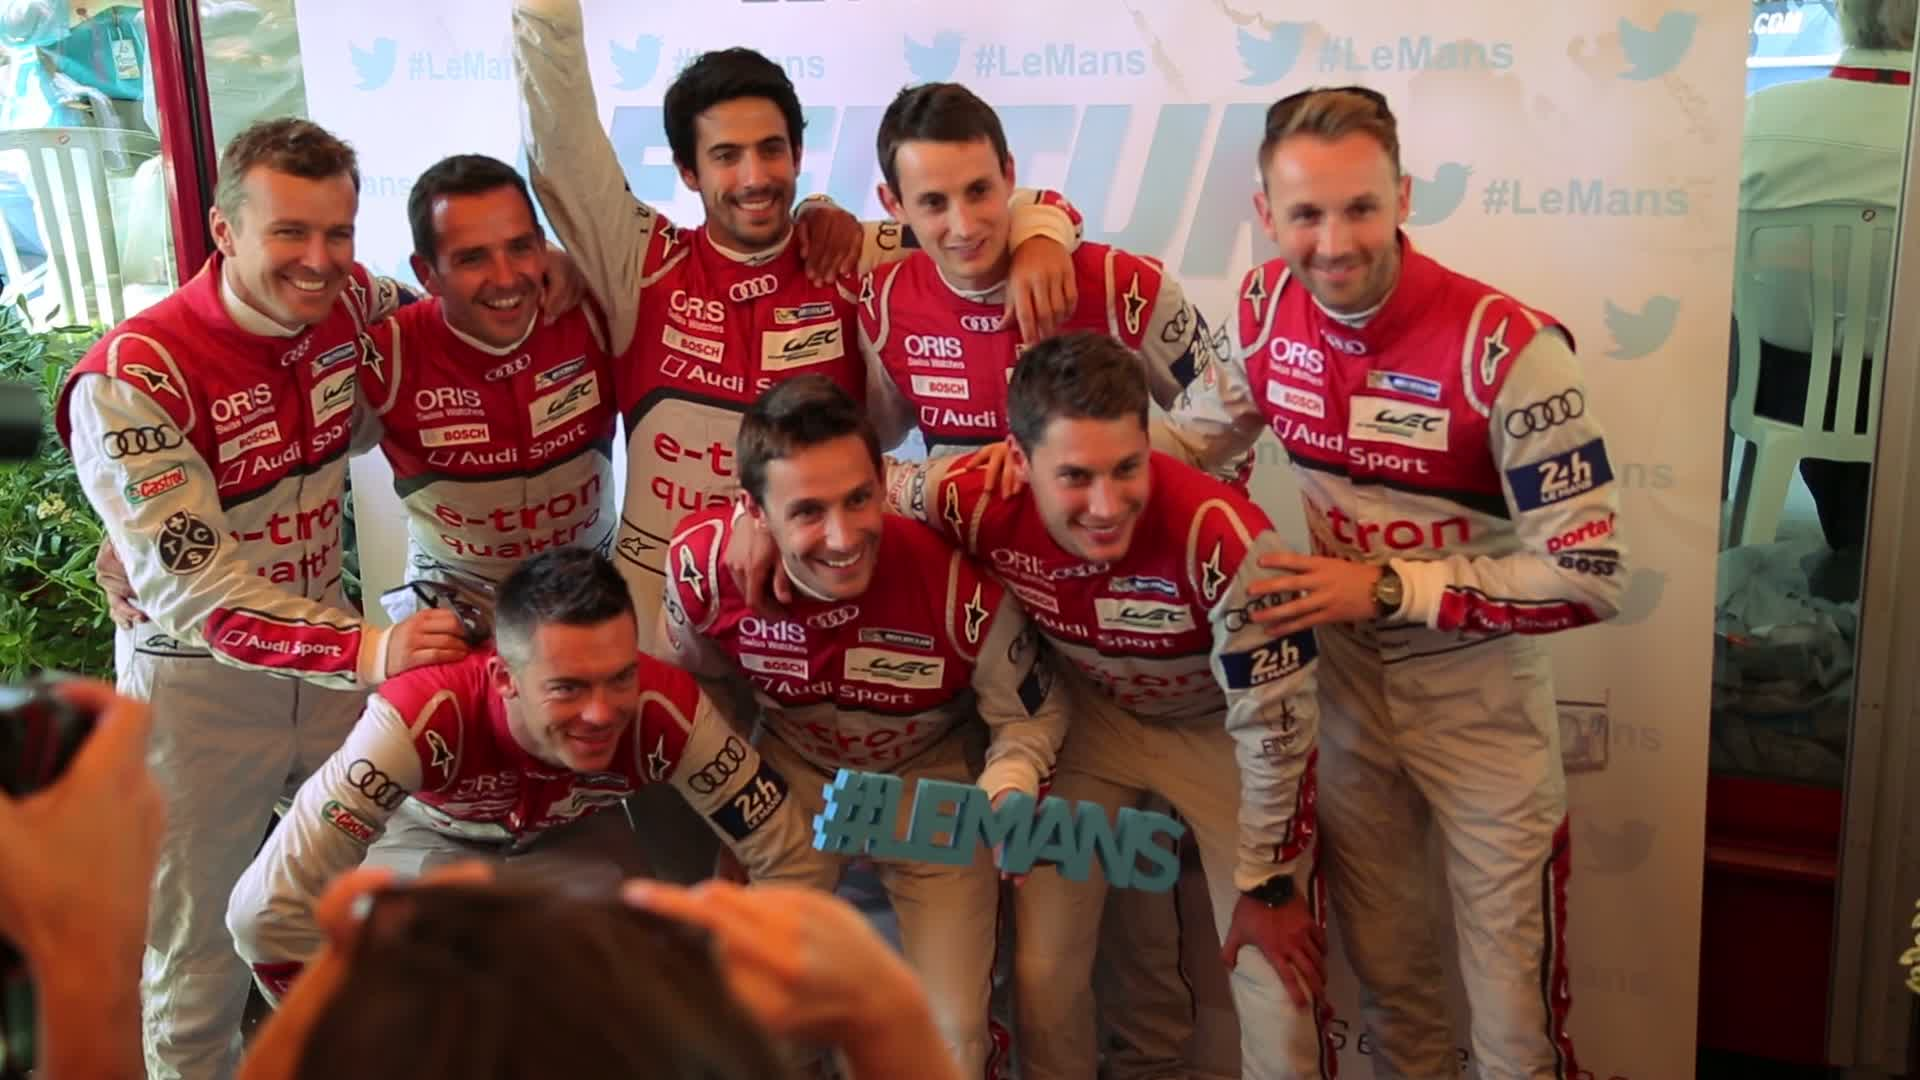 60 Seconds of Audi Sport 34/2015 - 24h Le Mans, Scrutineering